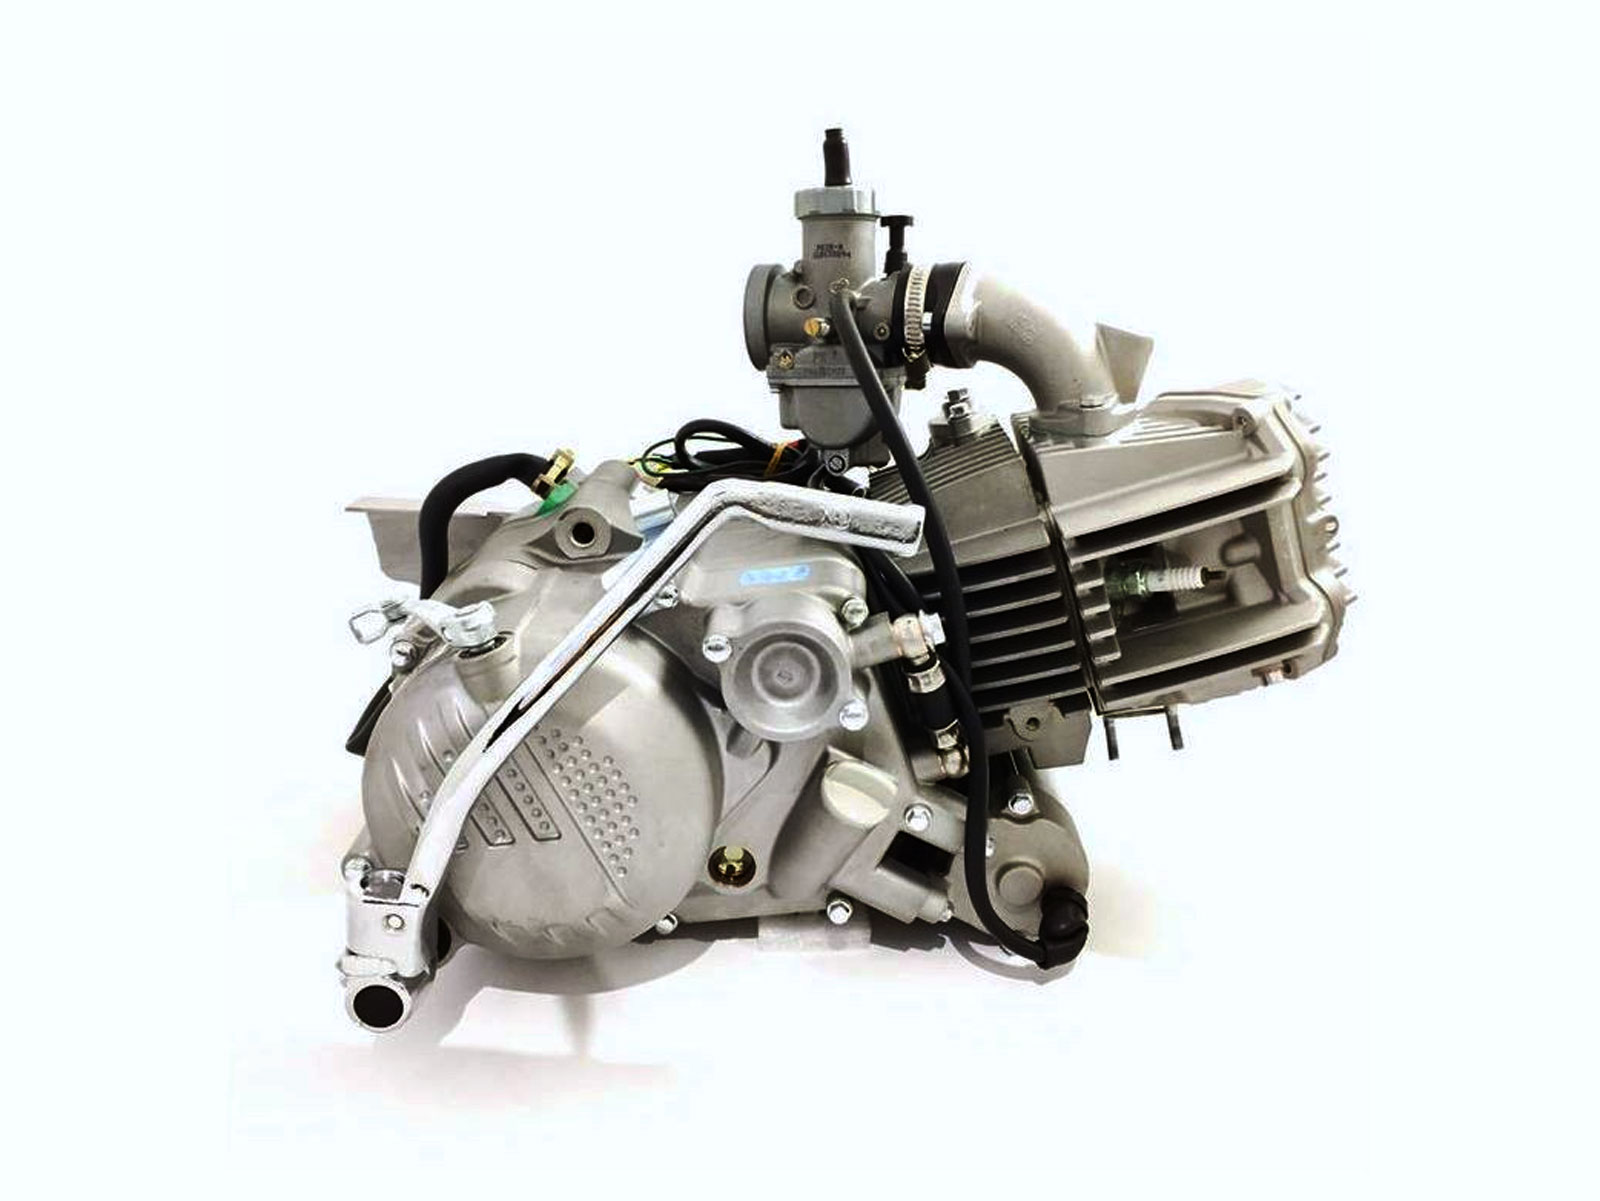 Engines Tbolt Usa Llc Honda Atc70 Wiring Piranha 190cc 2v Five Speed Electric Start Engine